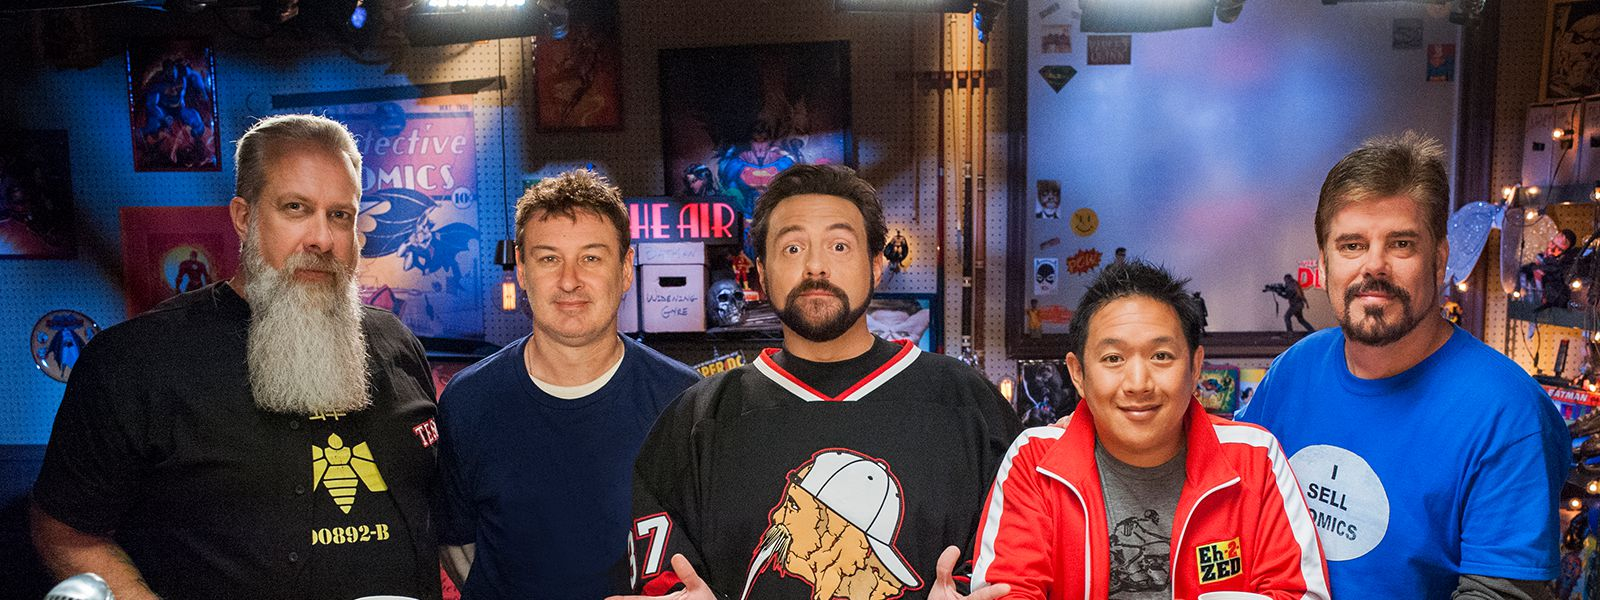 comic-book-men-608-bryan-walt-kevin-ming-mike-800×600